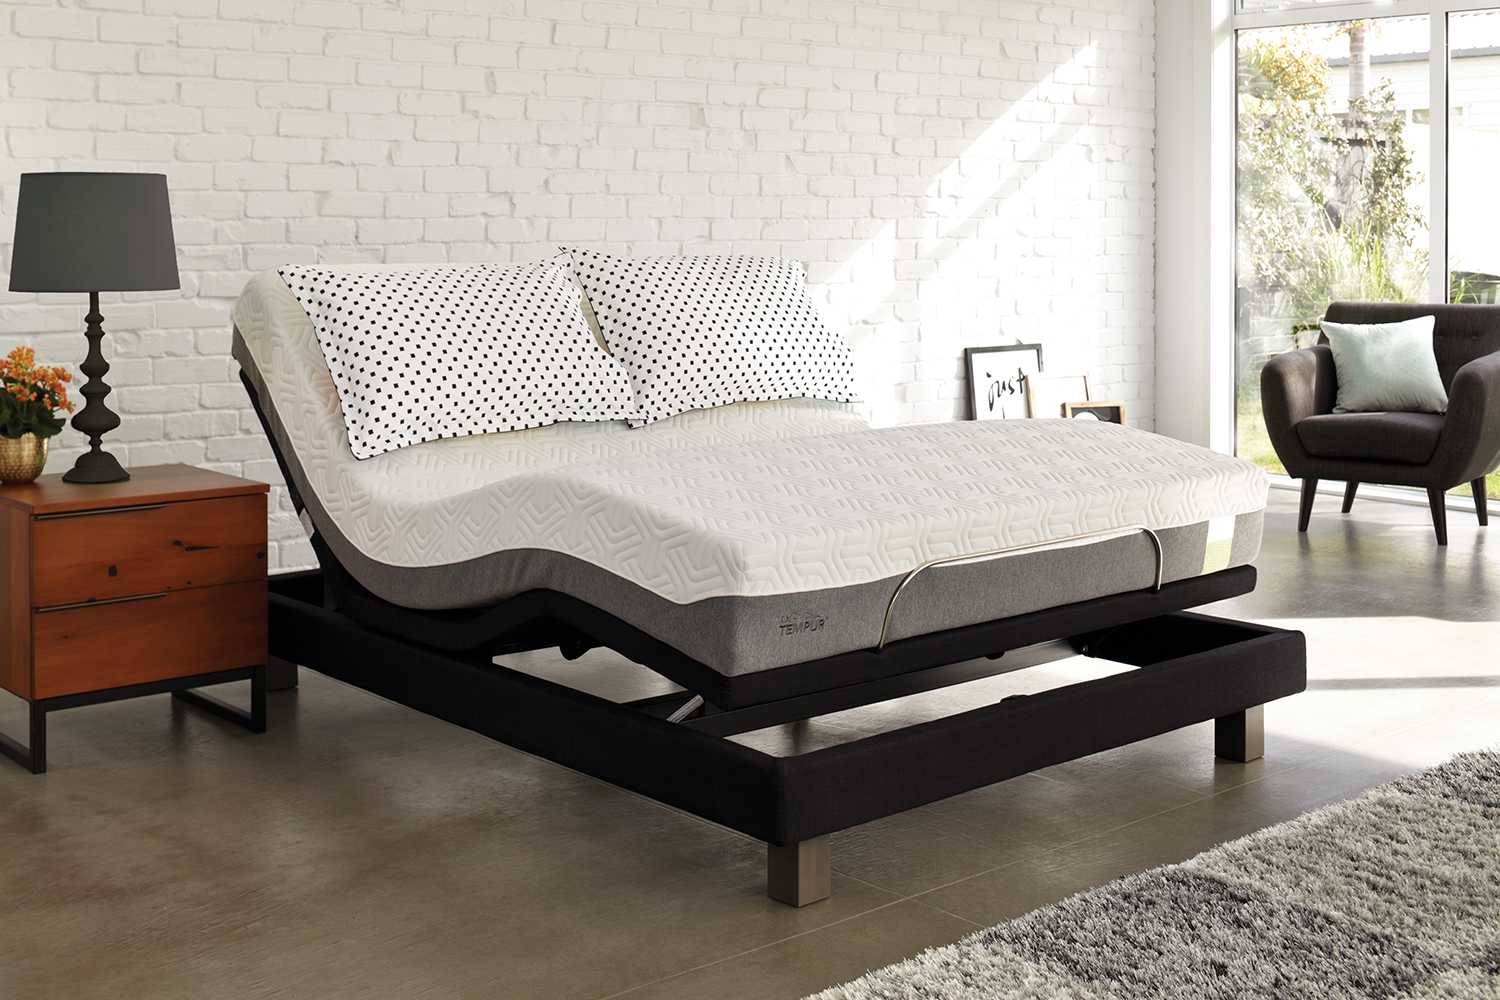 Adjustable Beds at Harvey Norman